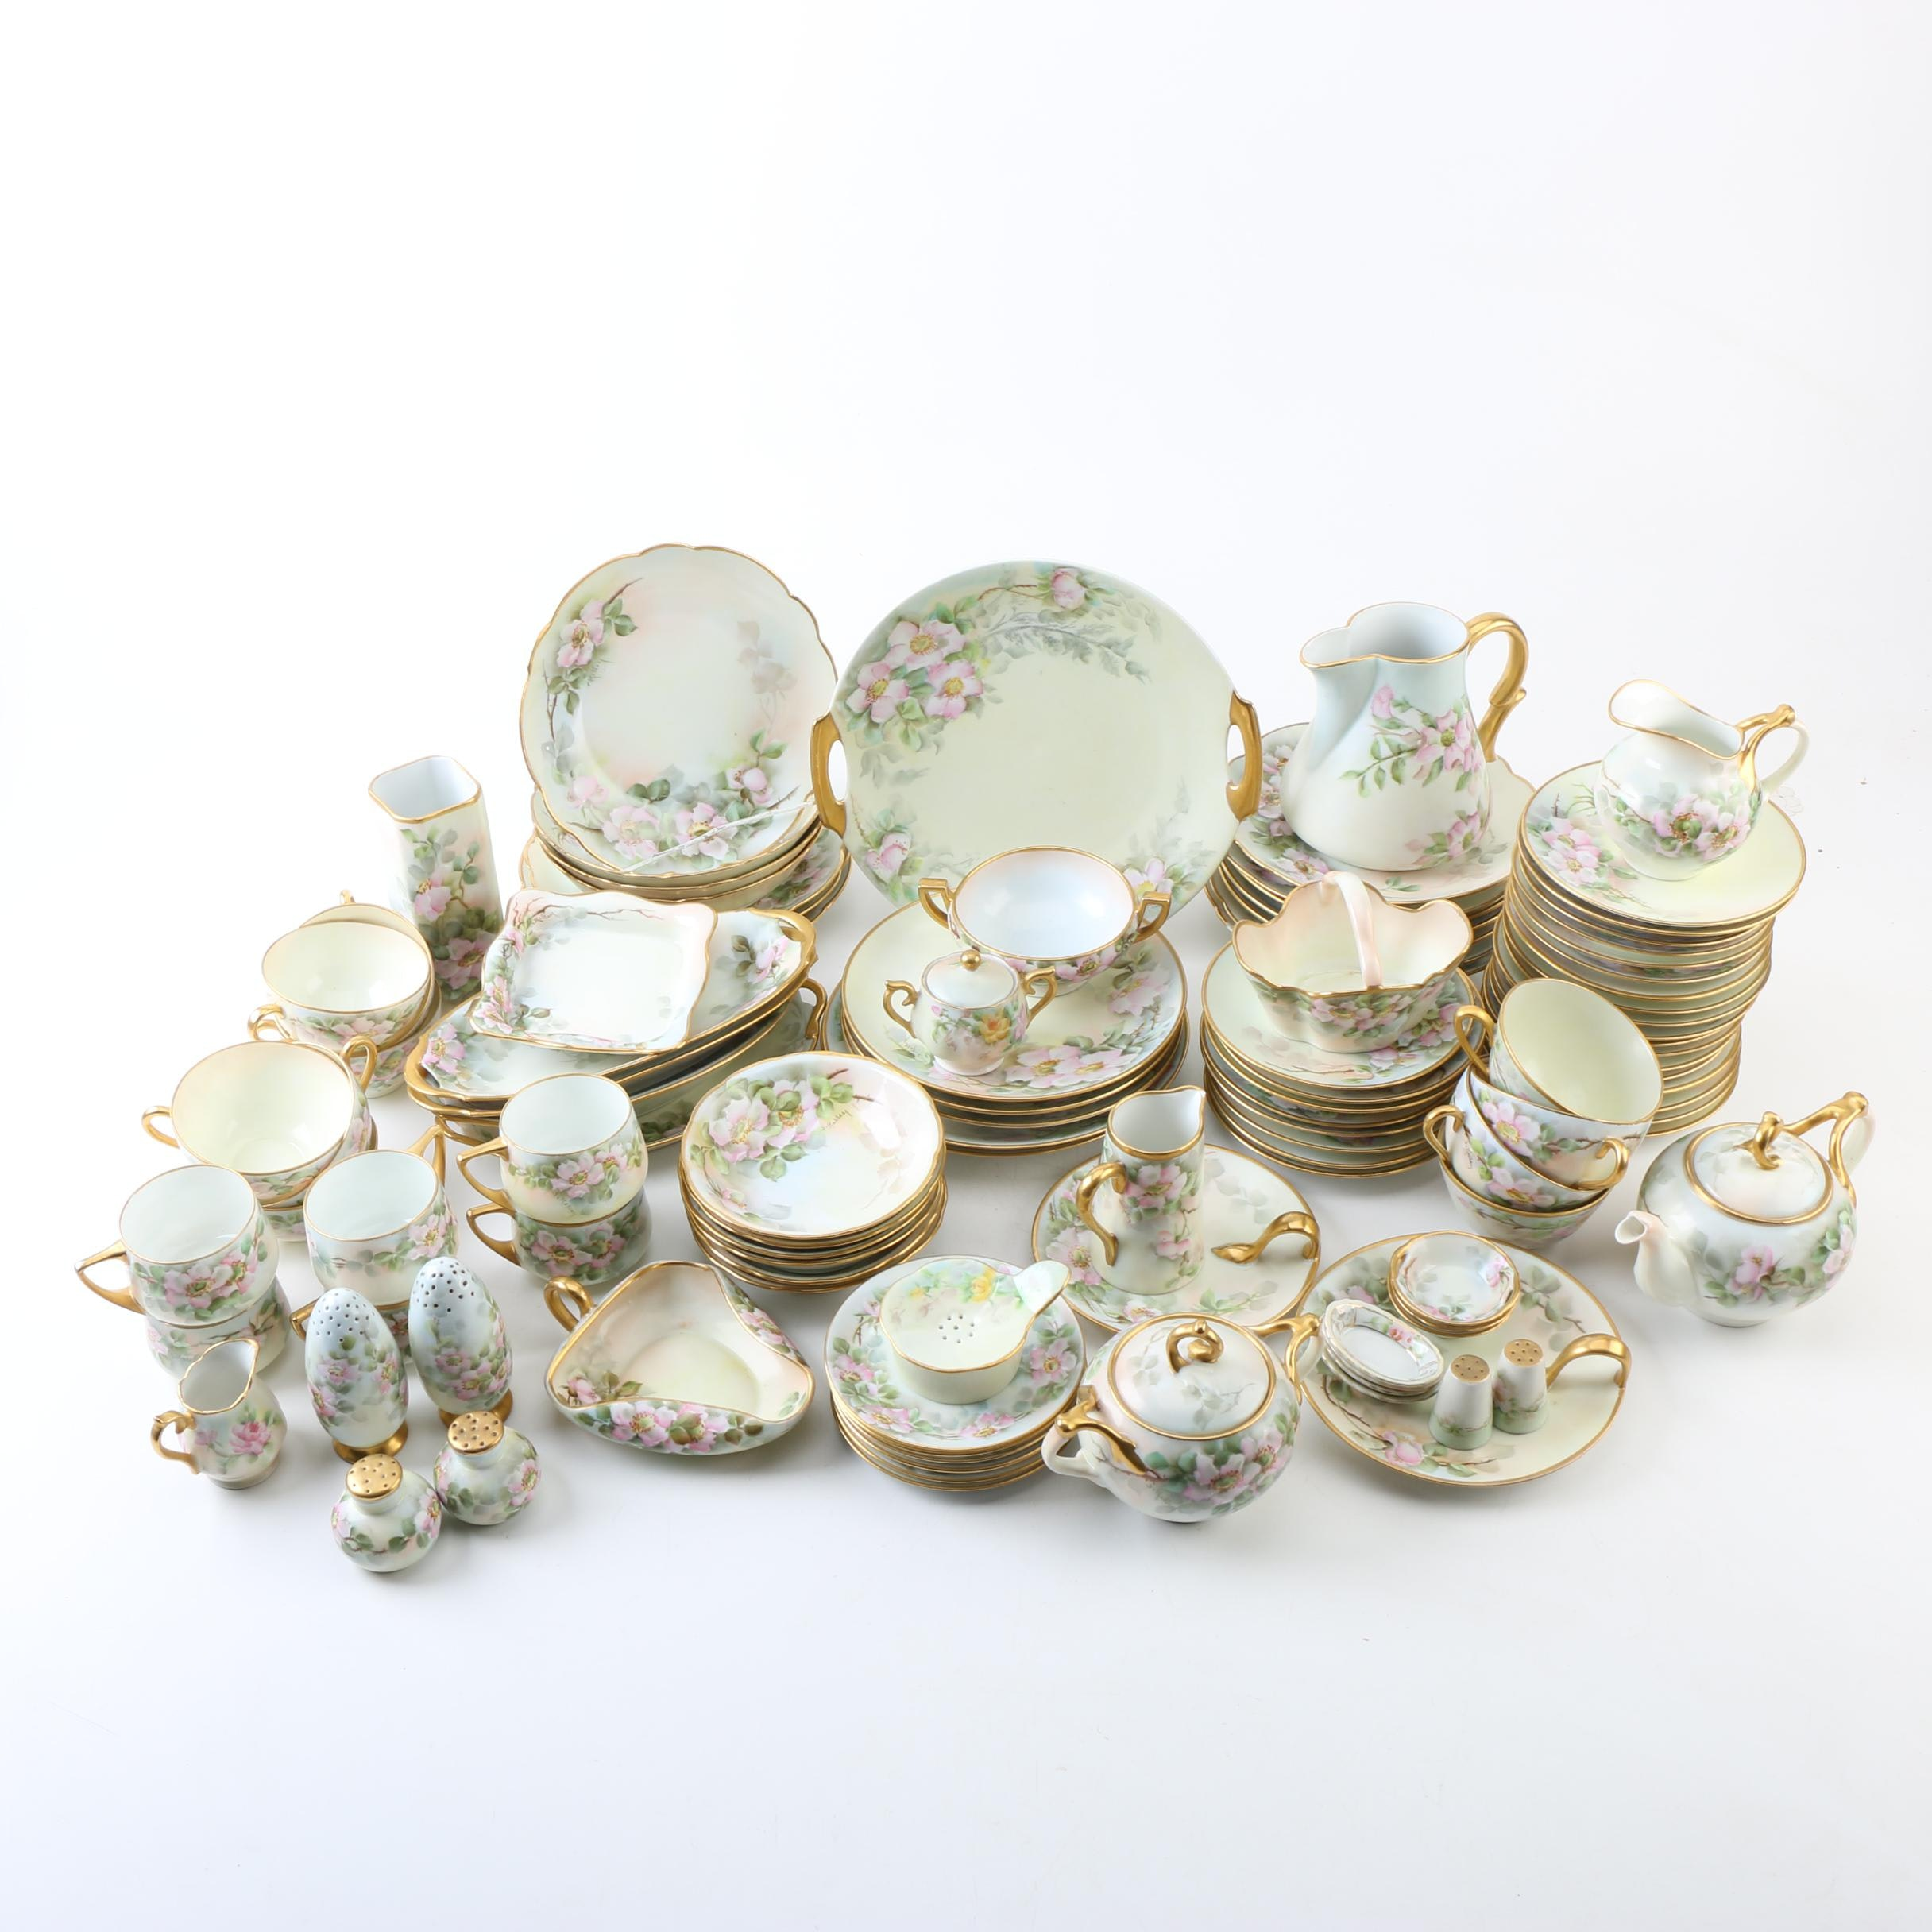 Antique and Vintage Hobbyist Hand-painted Porcelain Tableware